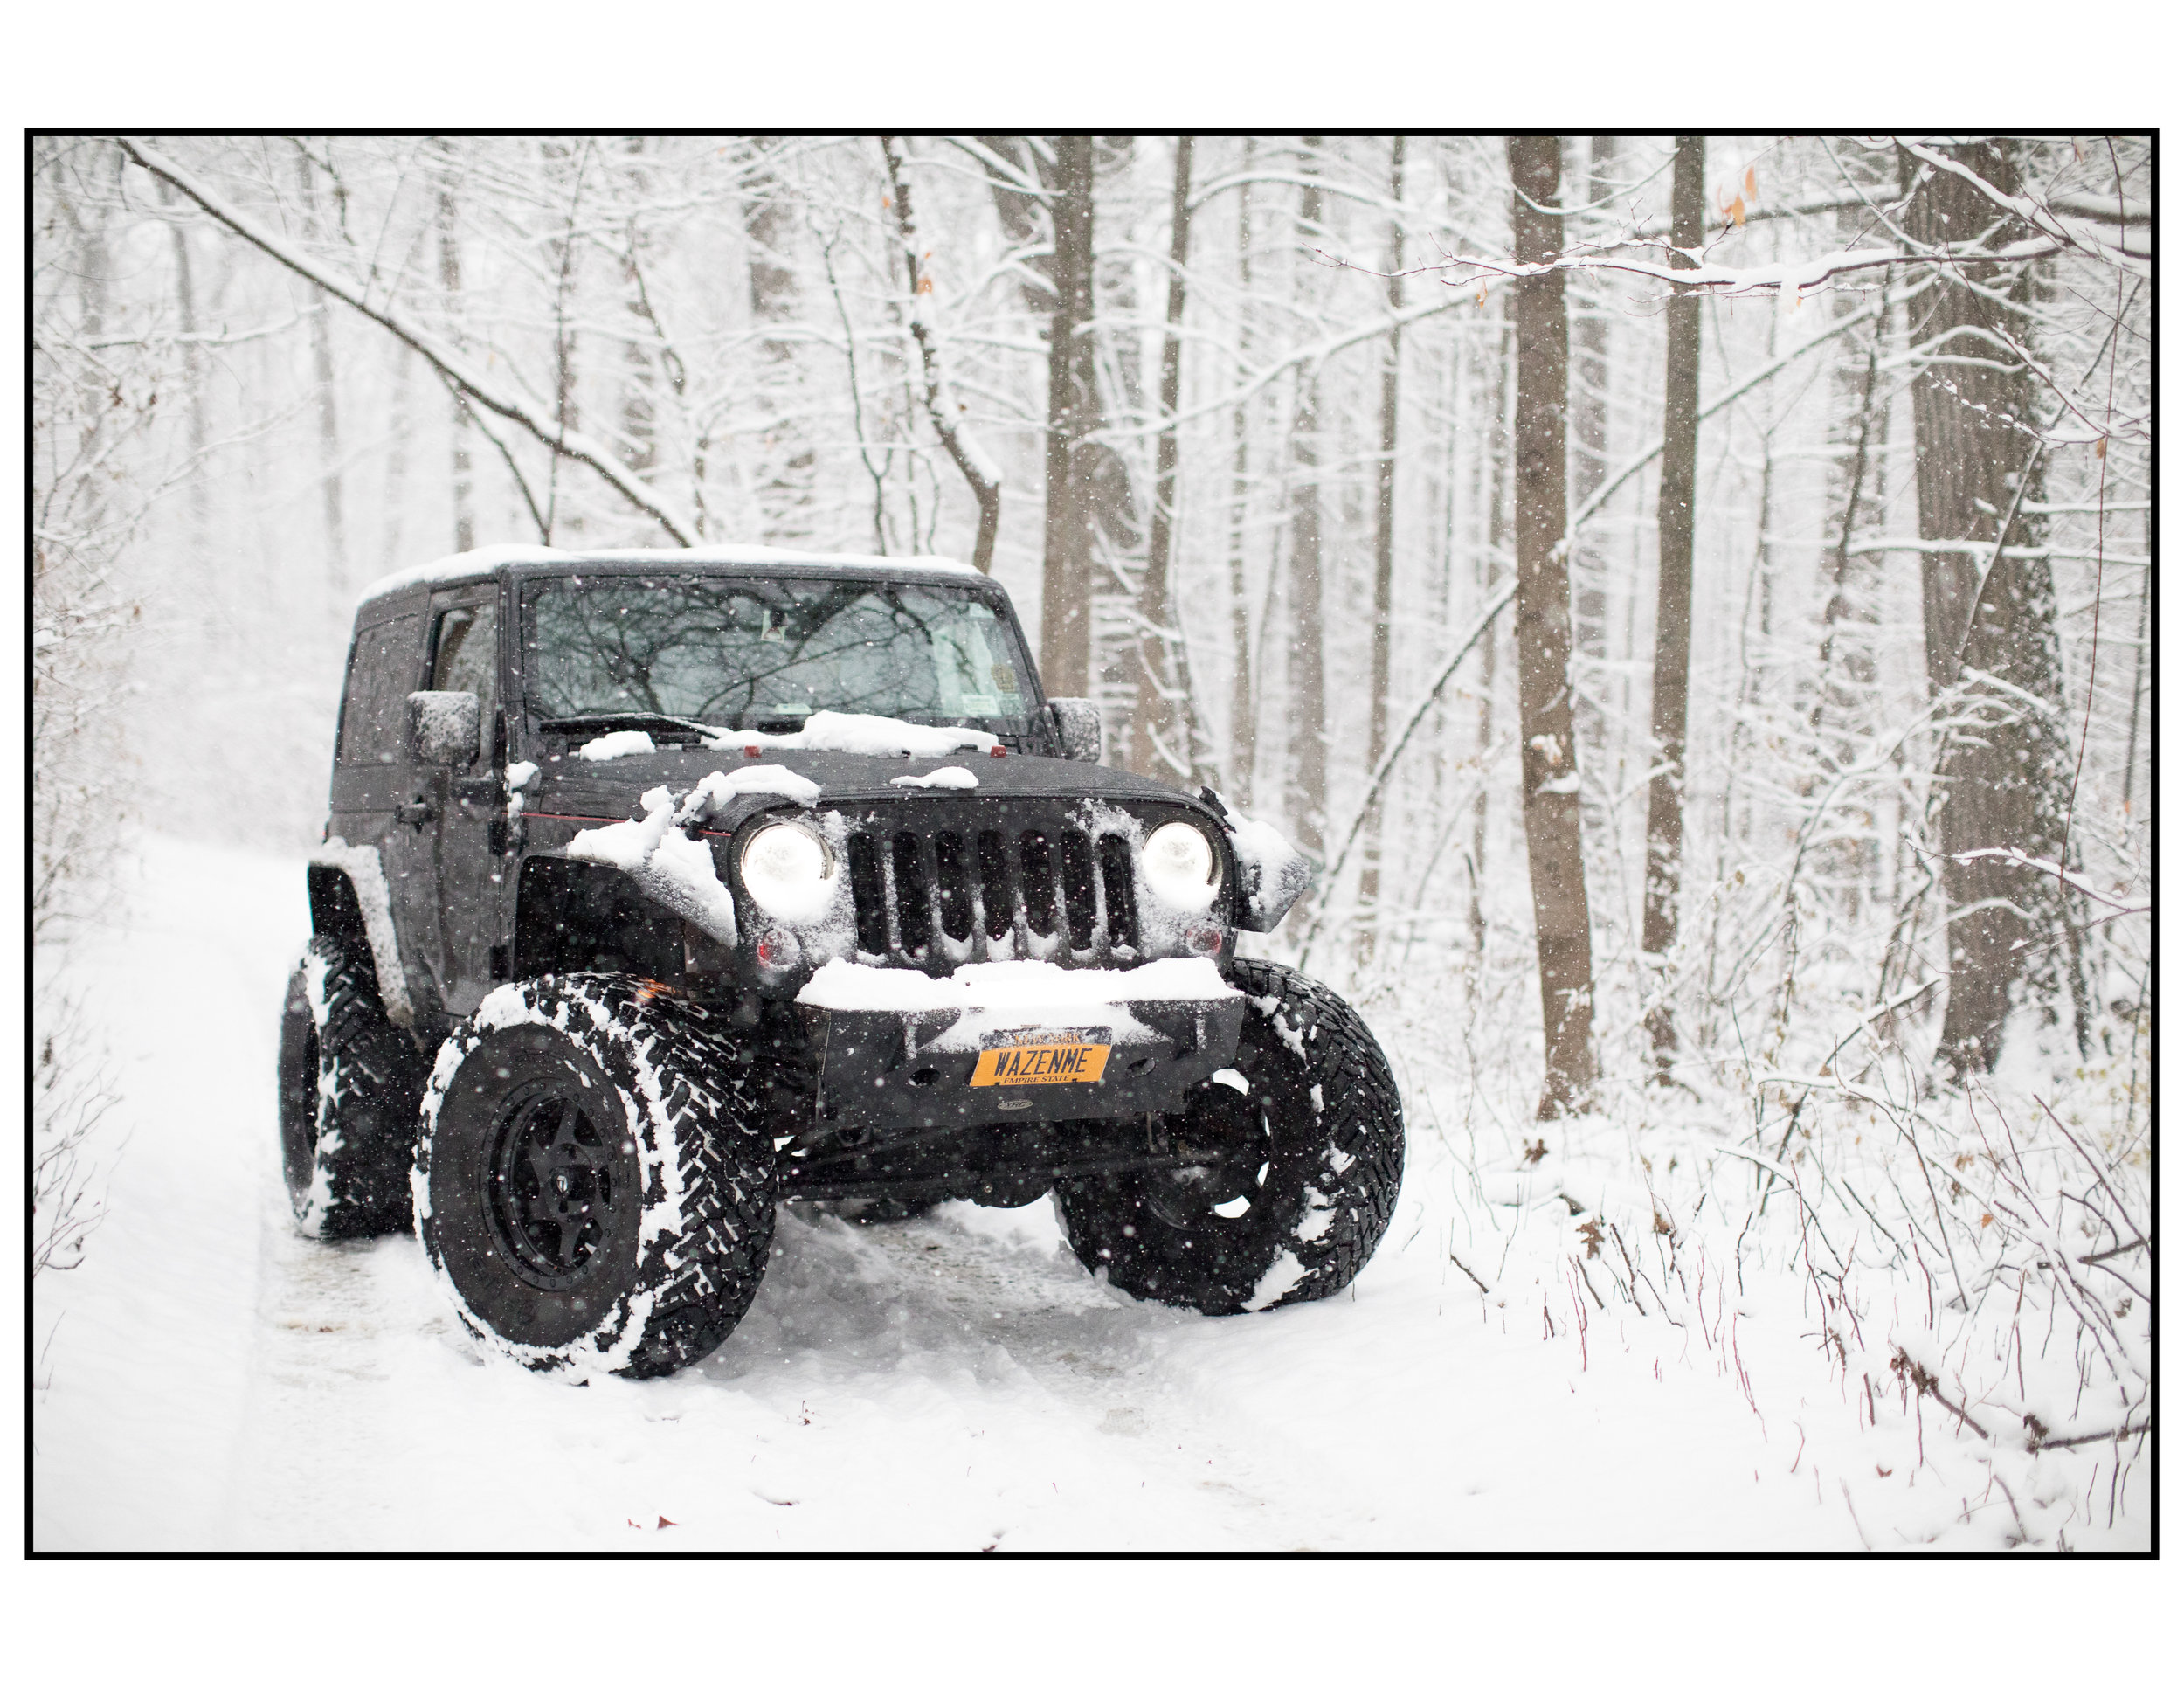 winter rrok jeep.jpg